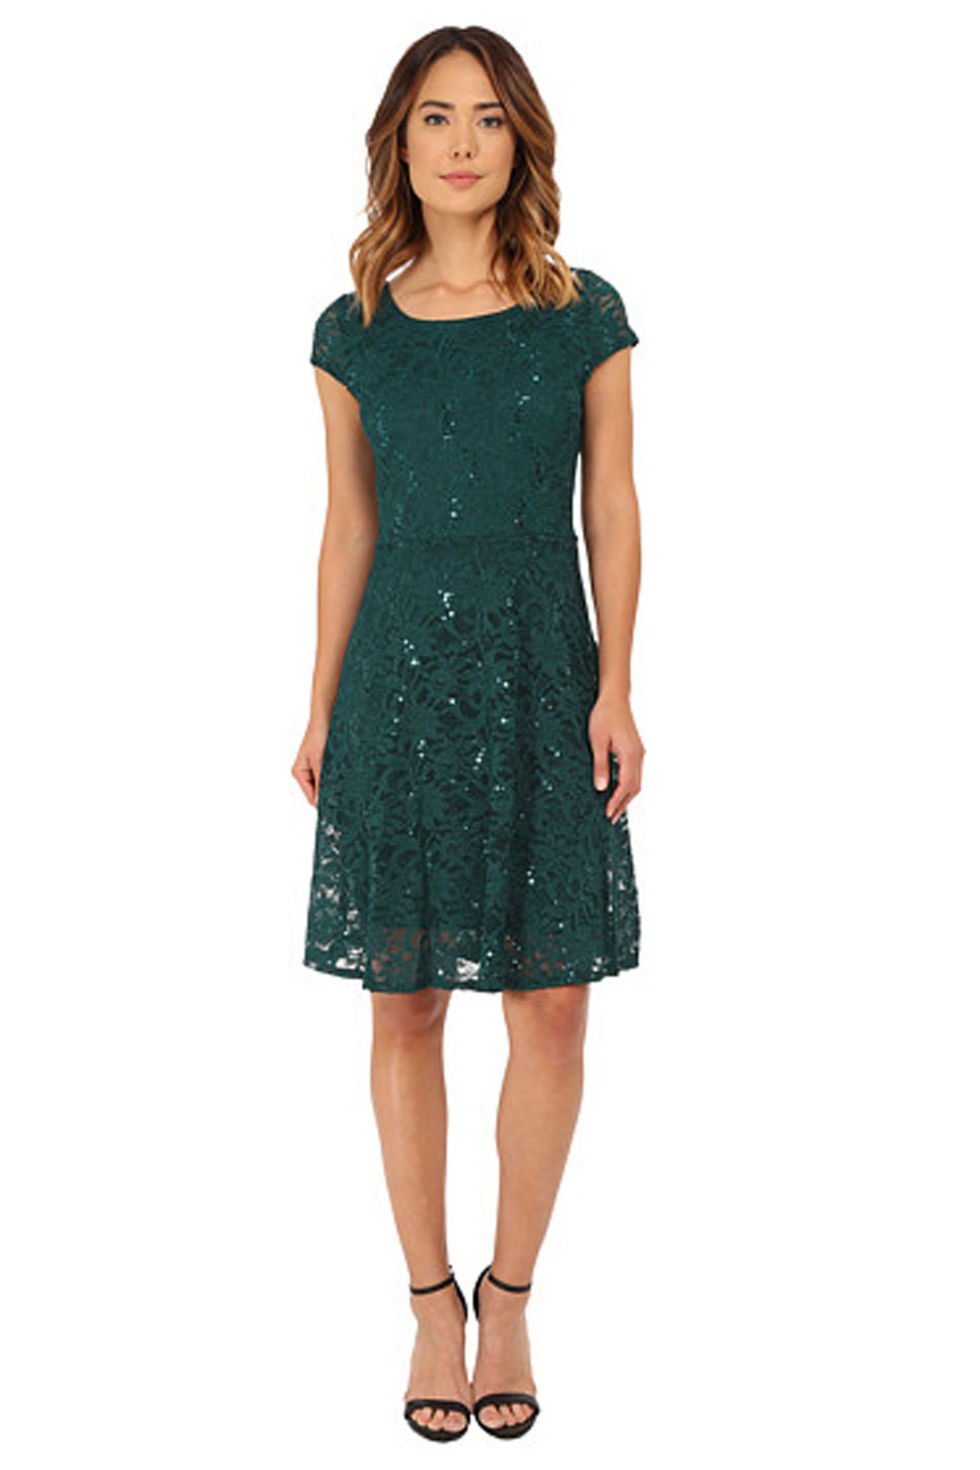 Sequin dresses for new years great ideas for fashion for Glitter new years dresses